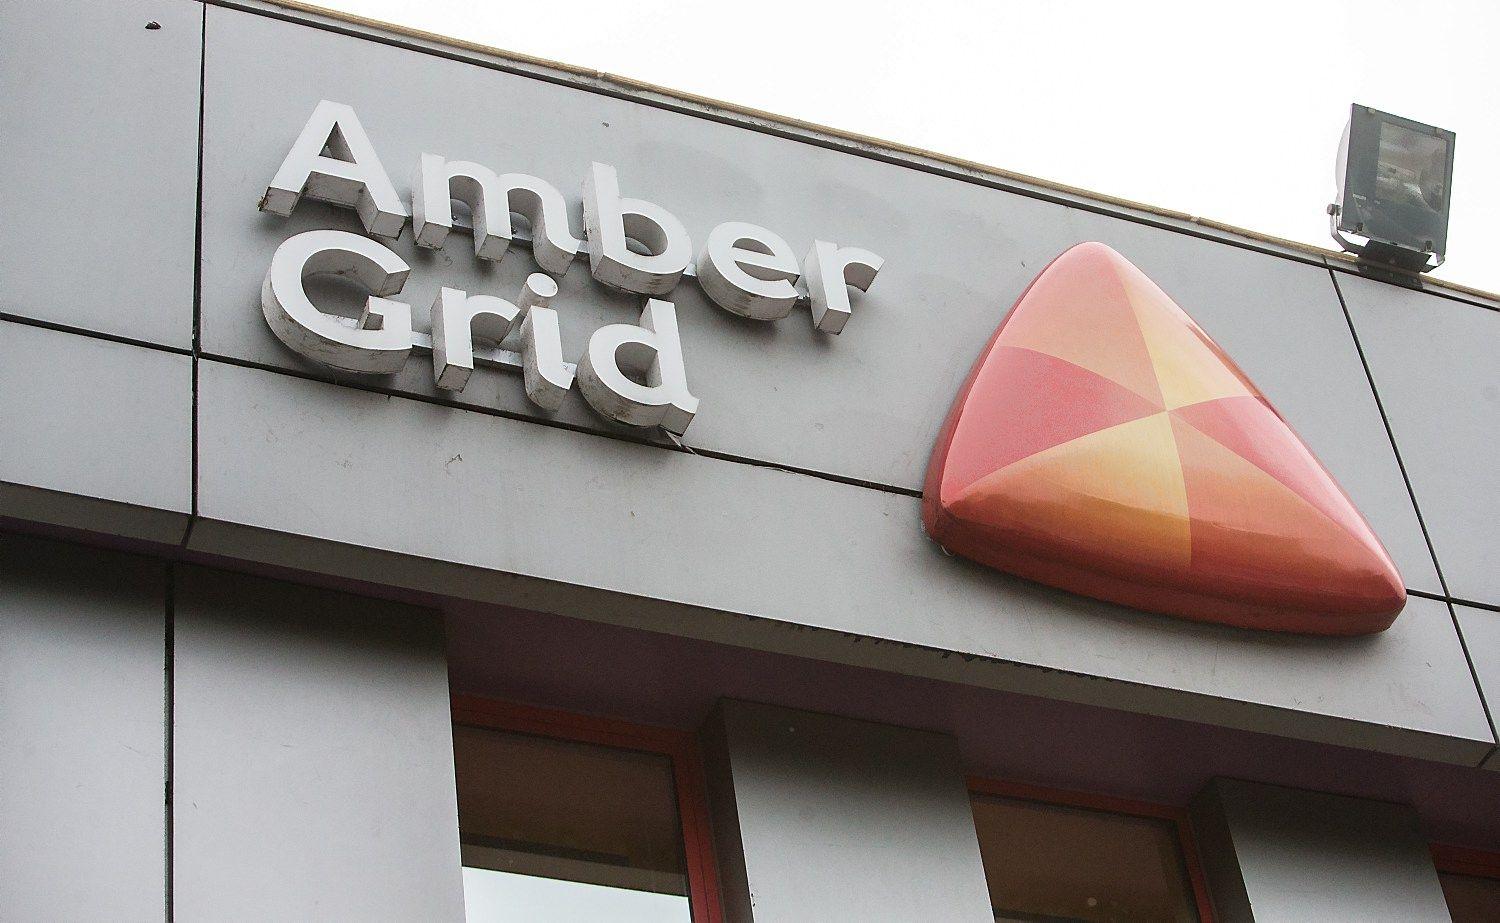 �Amber Grid� planuose � 195 mln. Eur investicij�